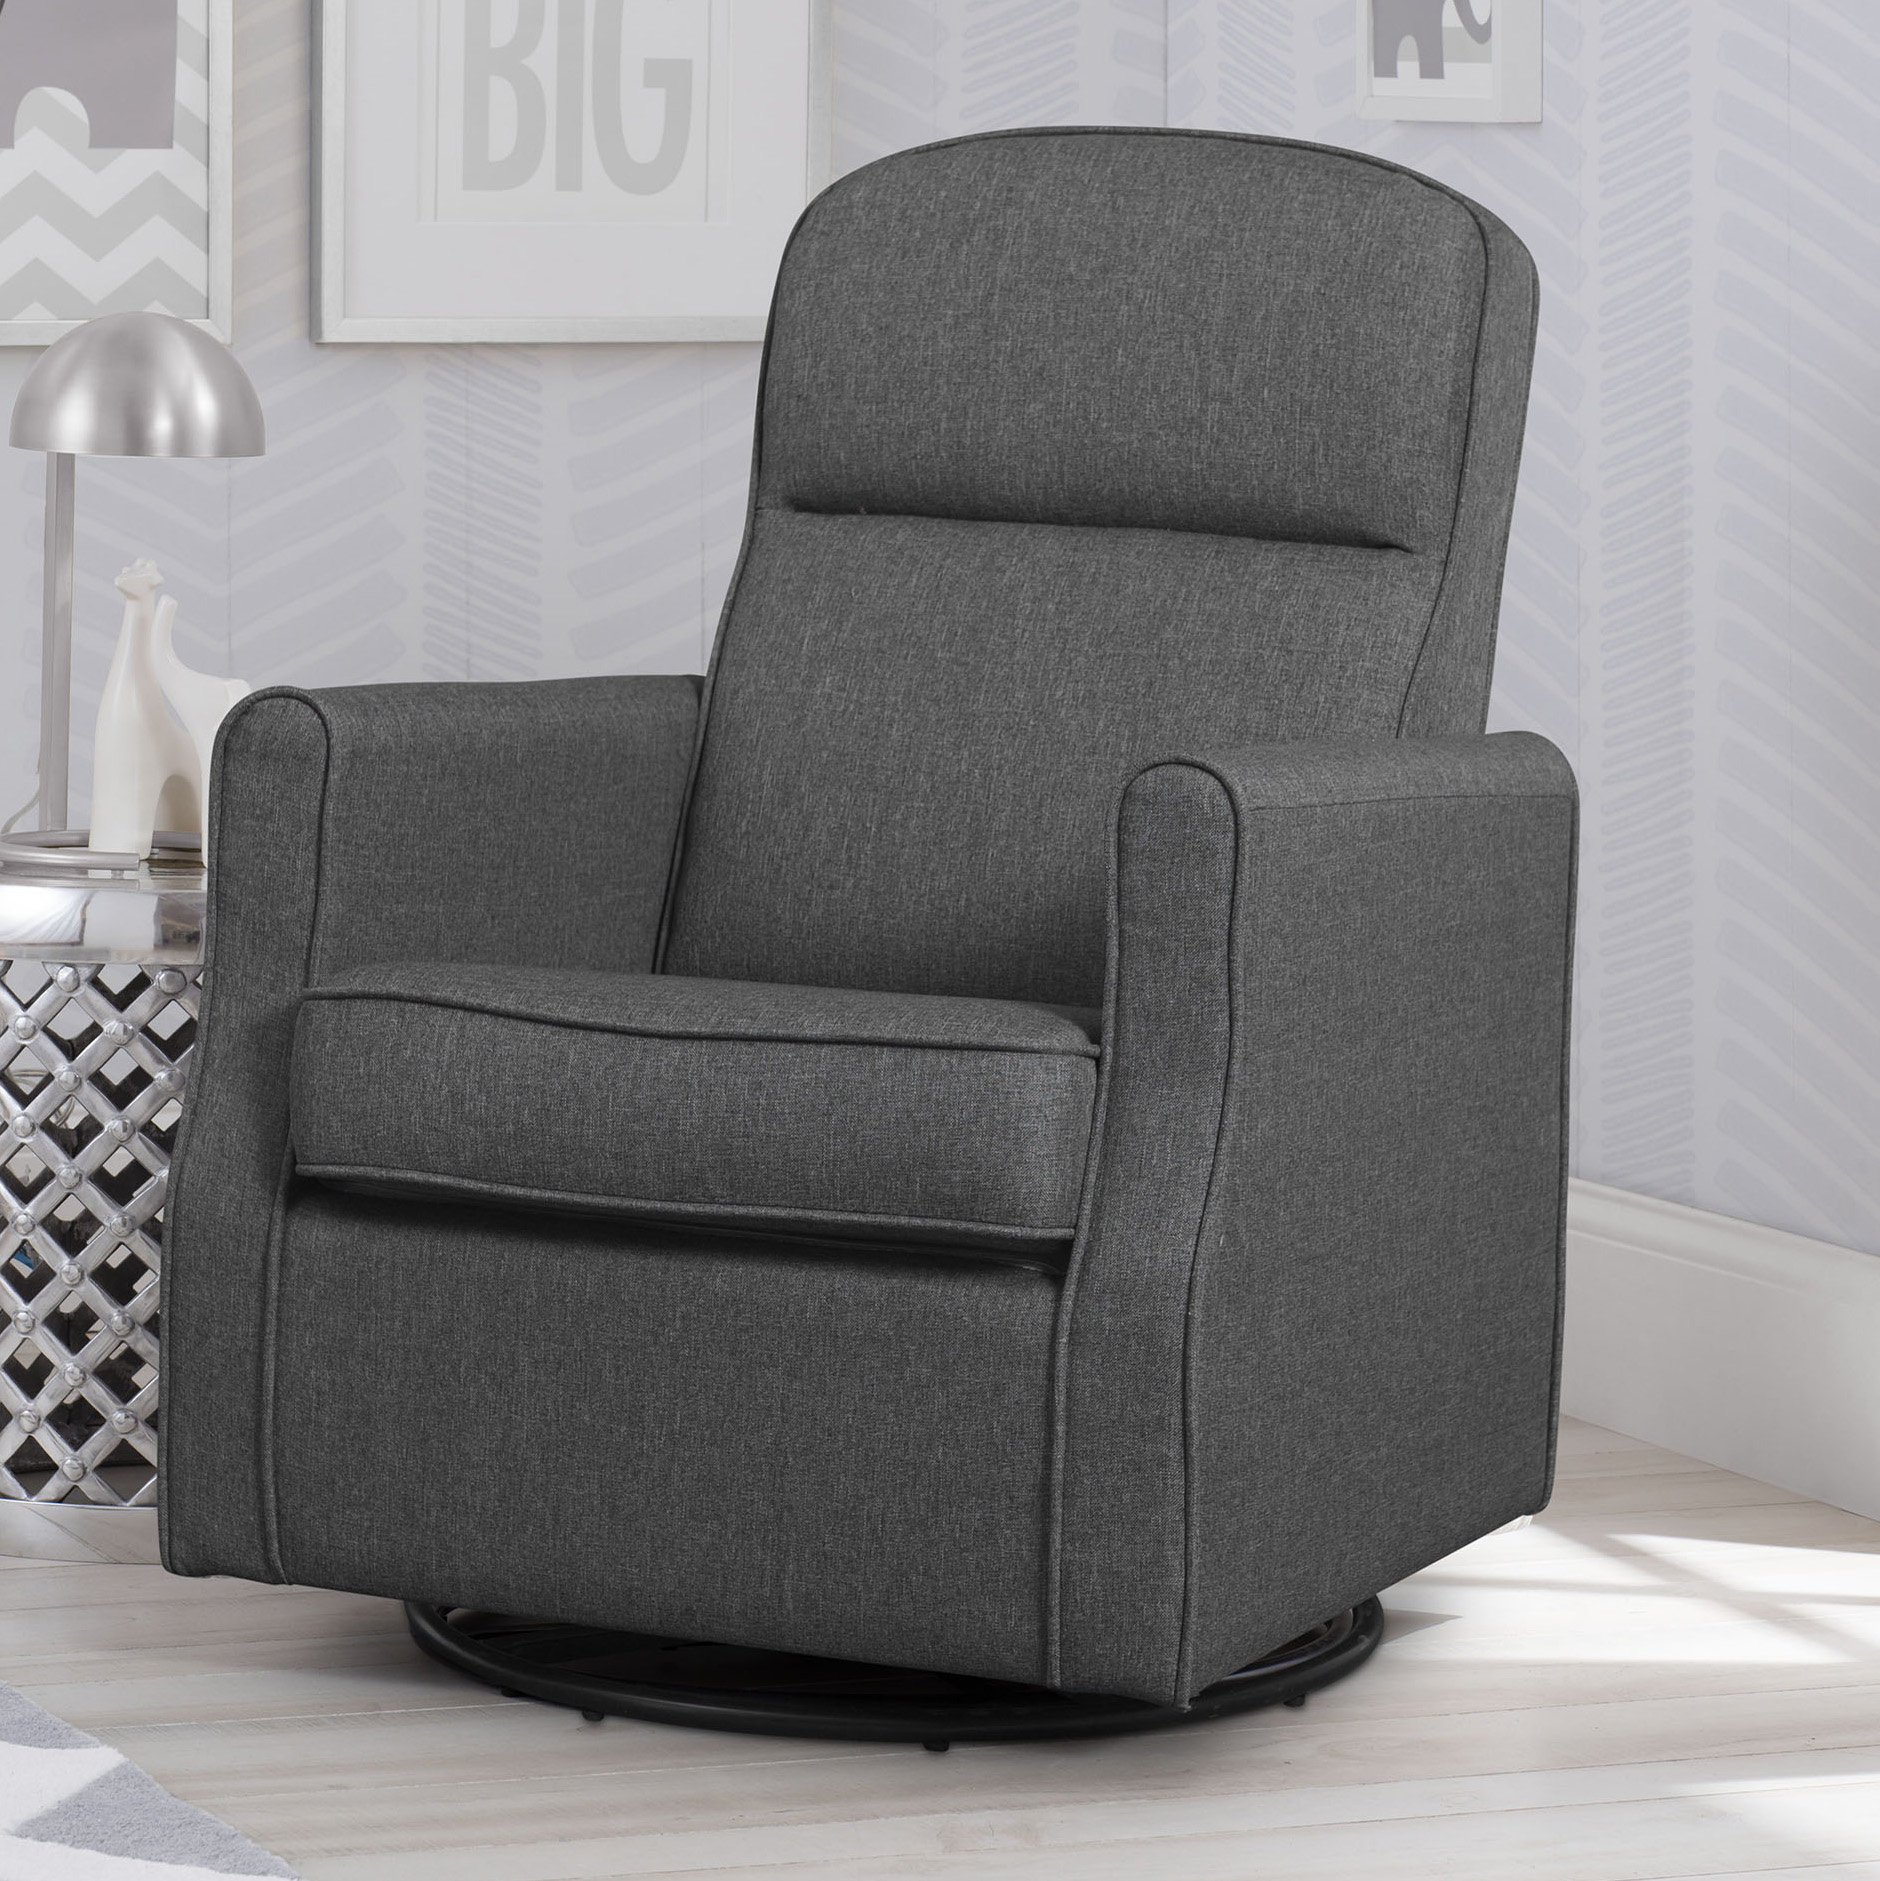 wingback nursery rocker blair slim swivel glider accent table quickview black side with glass top bedroom chairs gazebo canopy round patio tablecloths garage storage cabinets